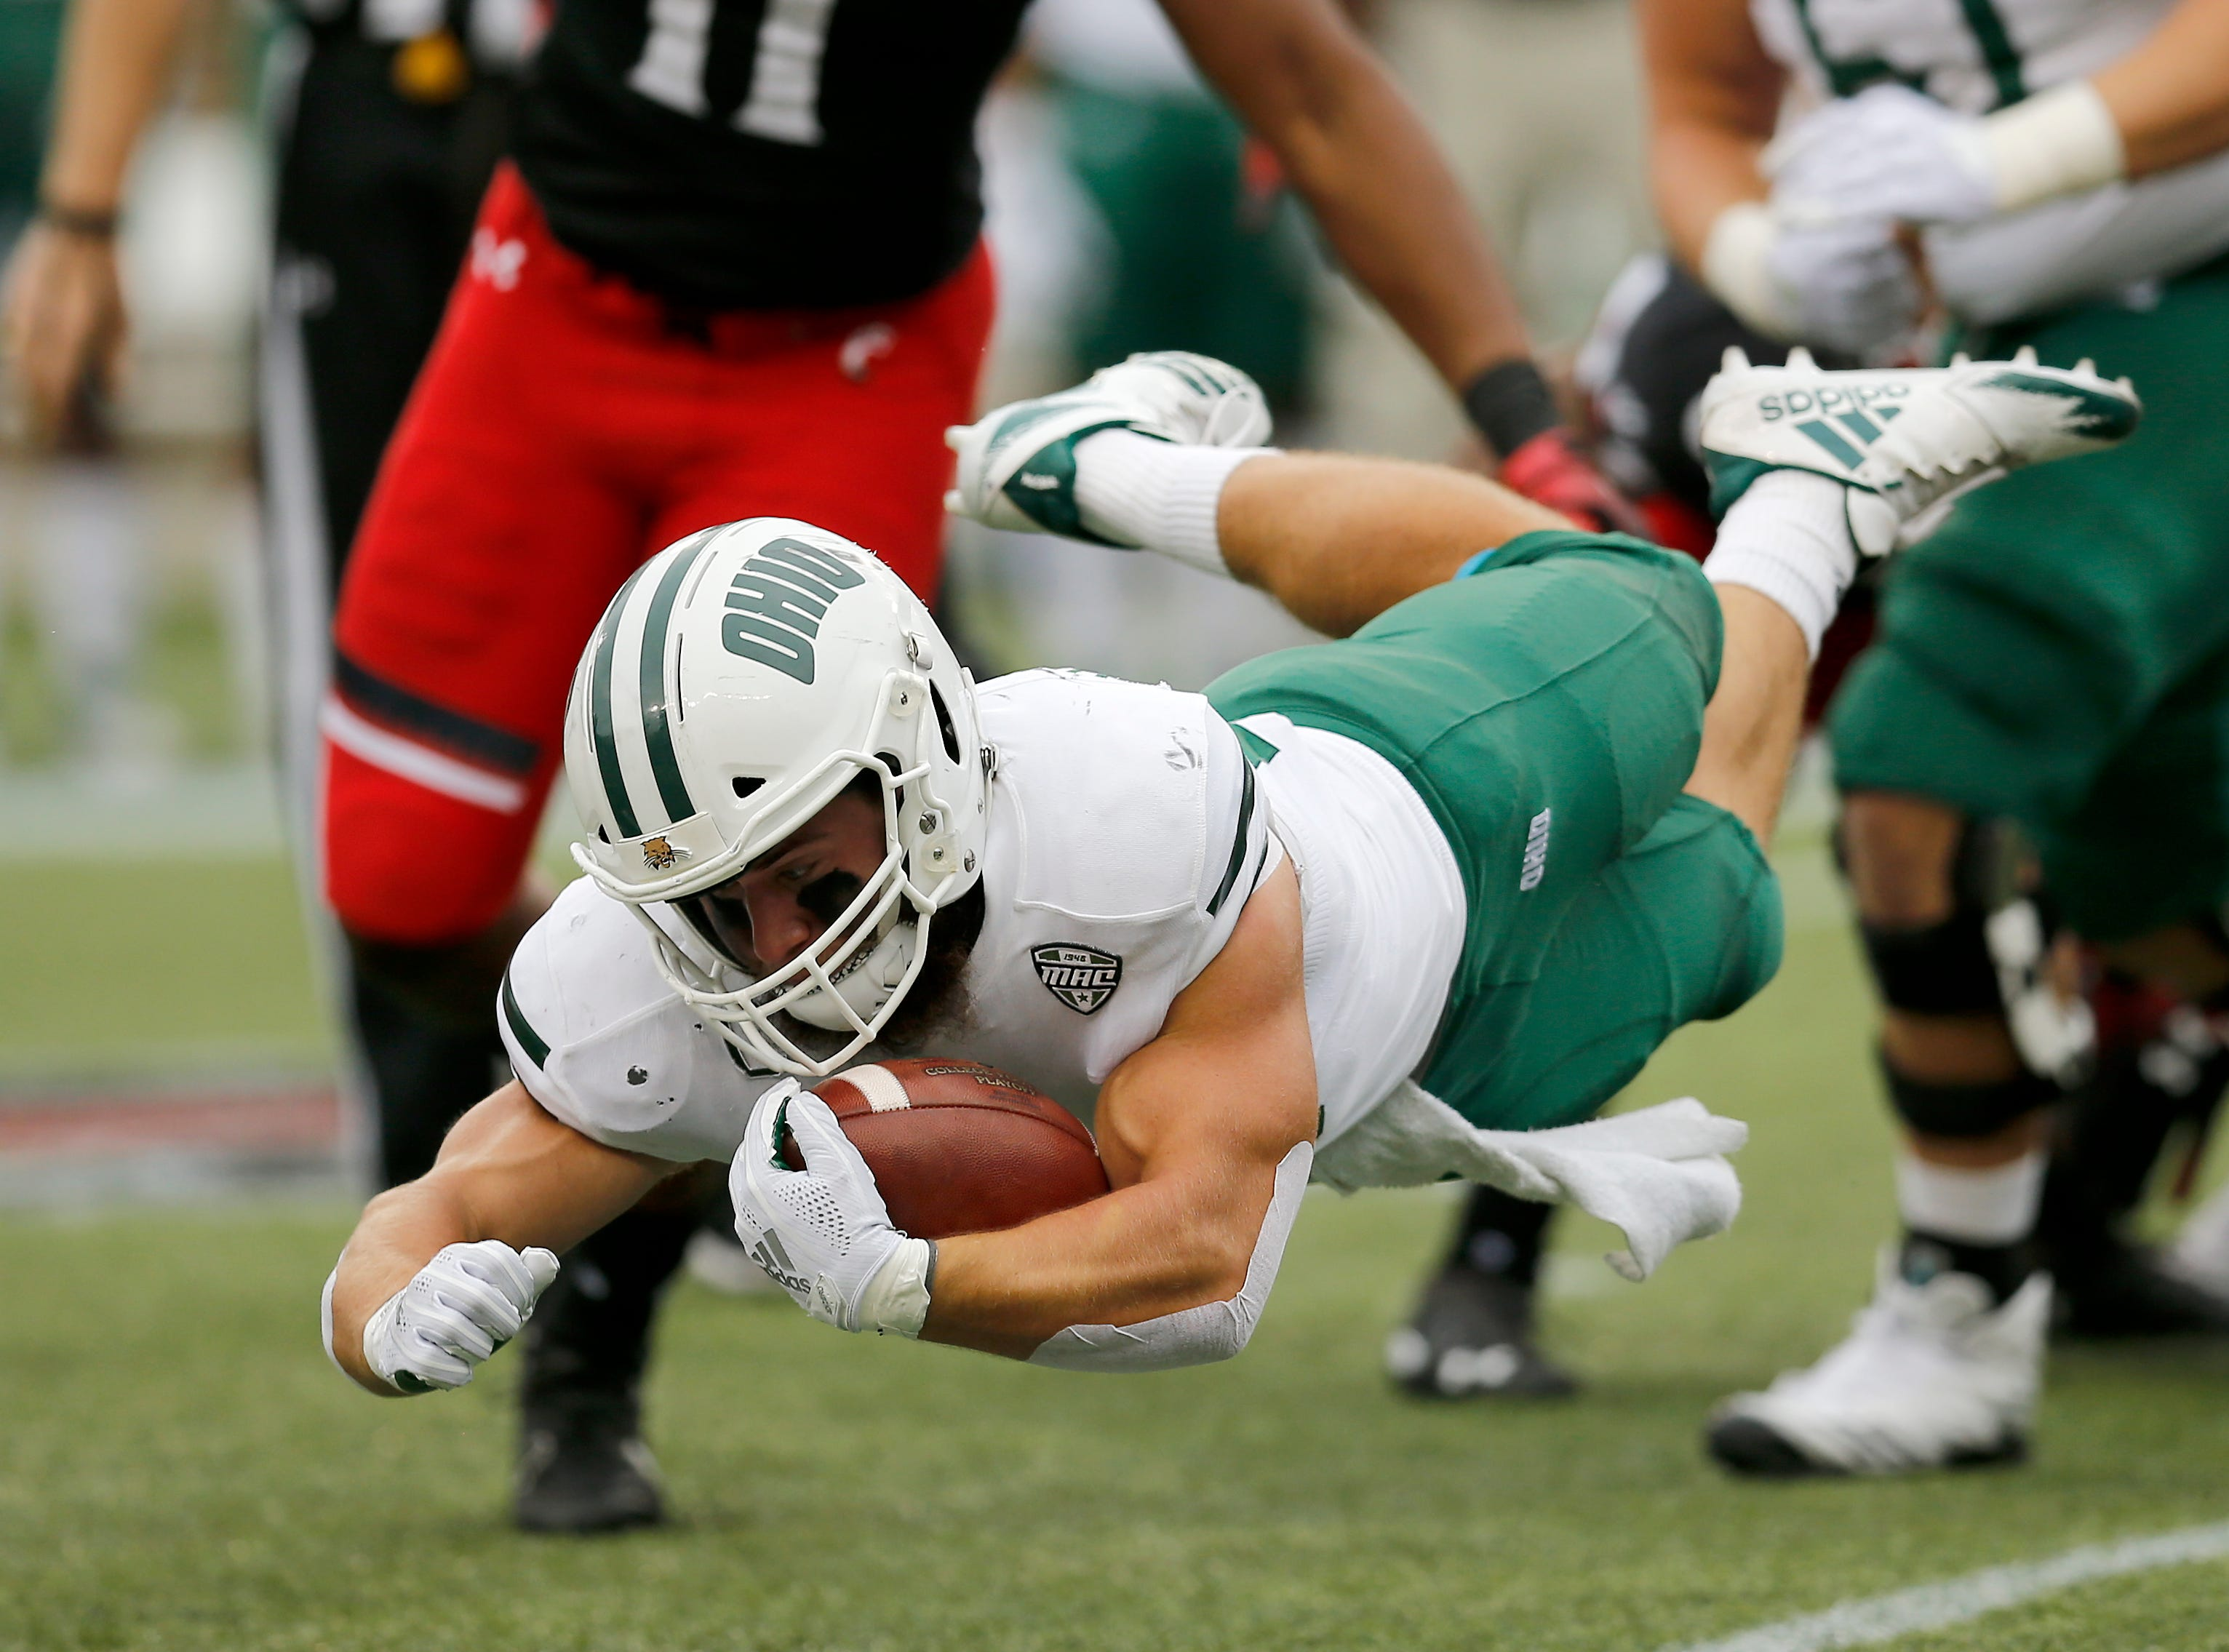 Ohio Bobcats running back A.J. Ouellette (45) is brought down on a carry in the first quarter of the NCAA football game between the Cincinnati Bearcats and the Ohio Bobcats at Nippert Stadium on the University of Cincinnati campus in Cincinnati on Saturday, Sept. 22, 2018. The Bobcats led 24-7 at halftime.